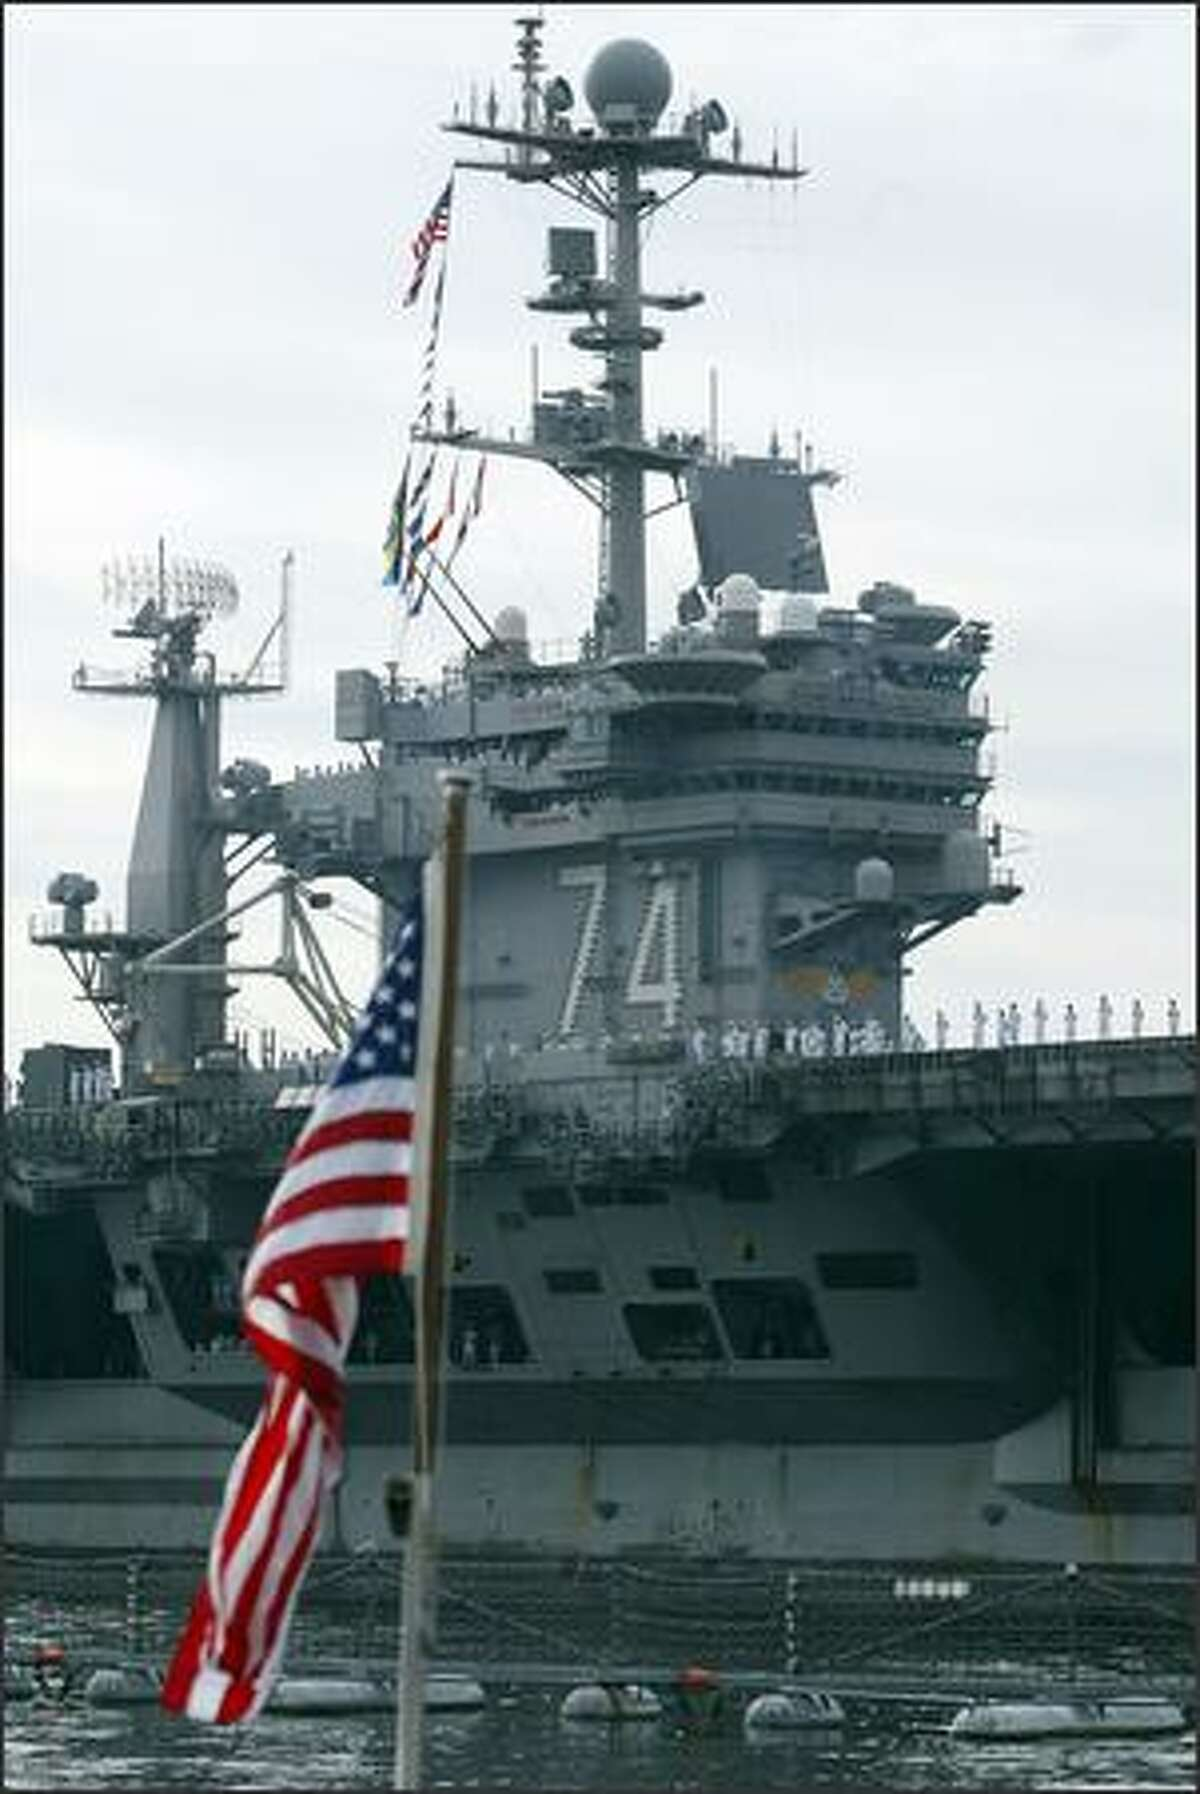 The superstructure of the USS Stennis passes before the flag on the submarine USS Seawolf at the Naval Base Kitsap in Bremerton, Wash., Friday August 31, 2007. The Stennis returned to its home port after a half-year deployment in the waters of the Middle East in support of the fighting in Afghanistan and Iraq.